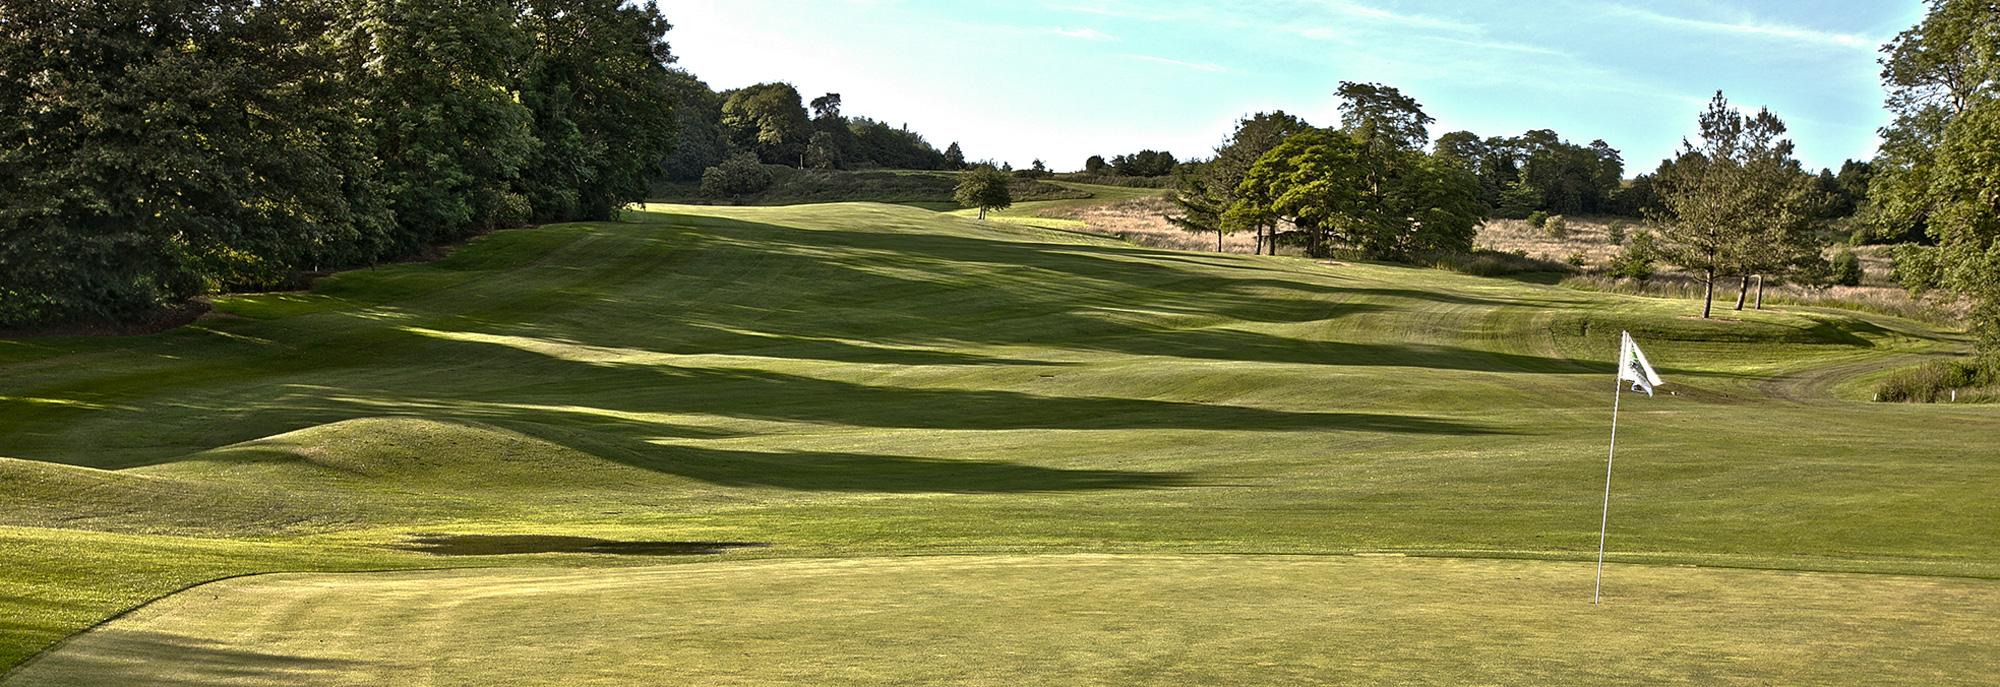 Beuzeval-Houlgate provides several of the premiere golf course near Normandy